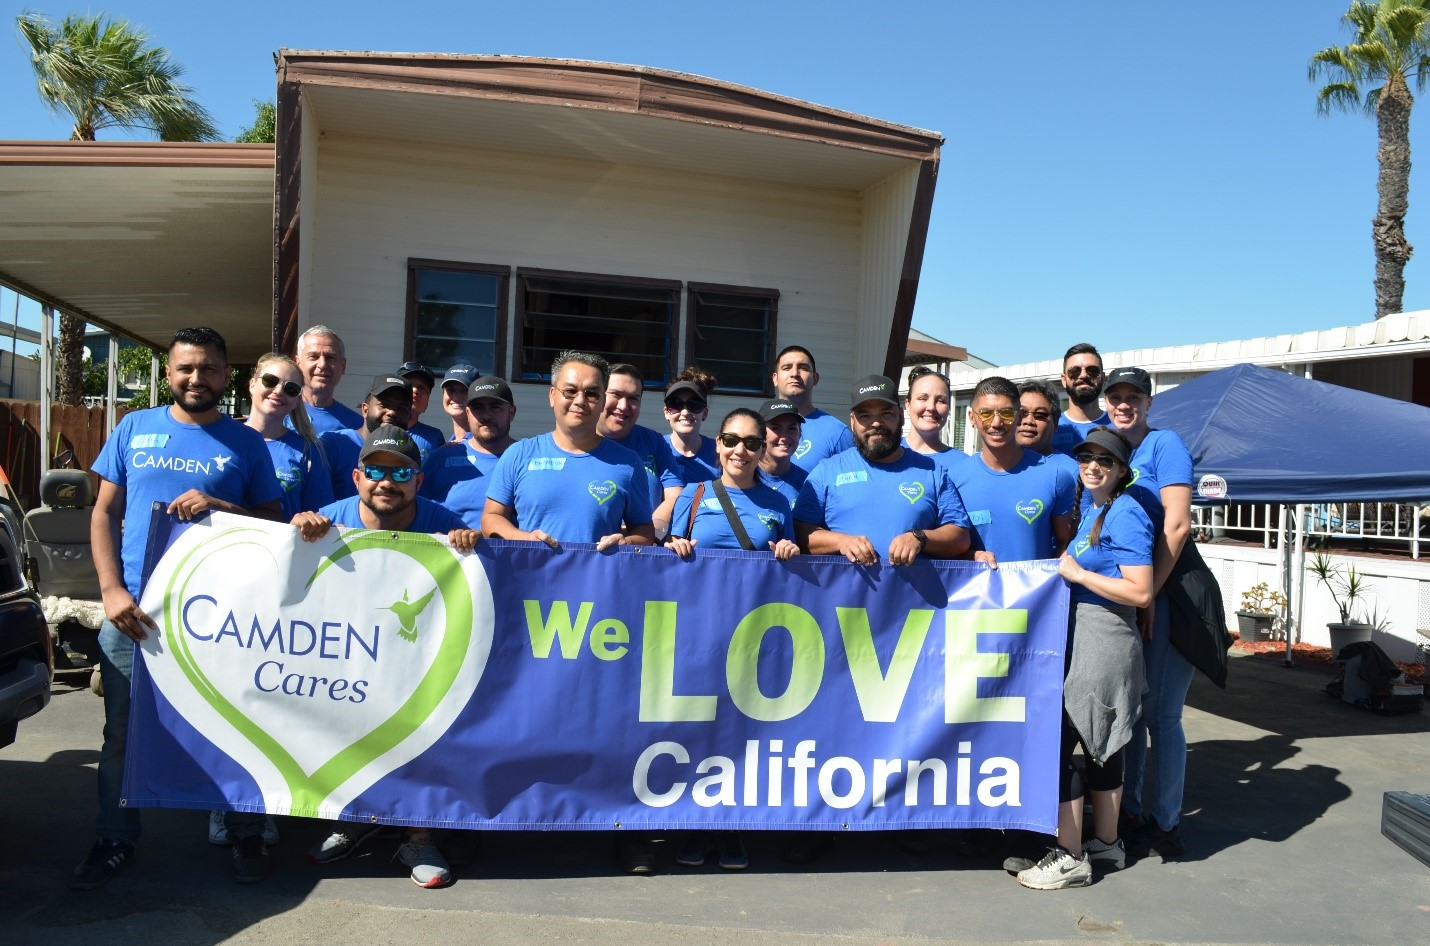 Camden Cares Team